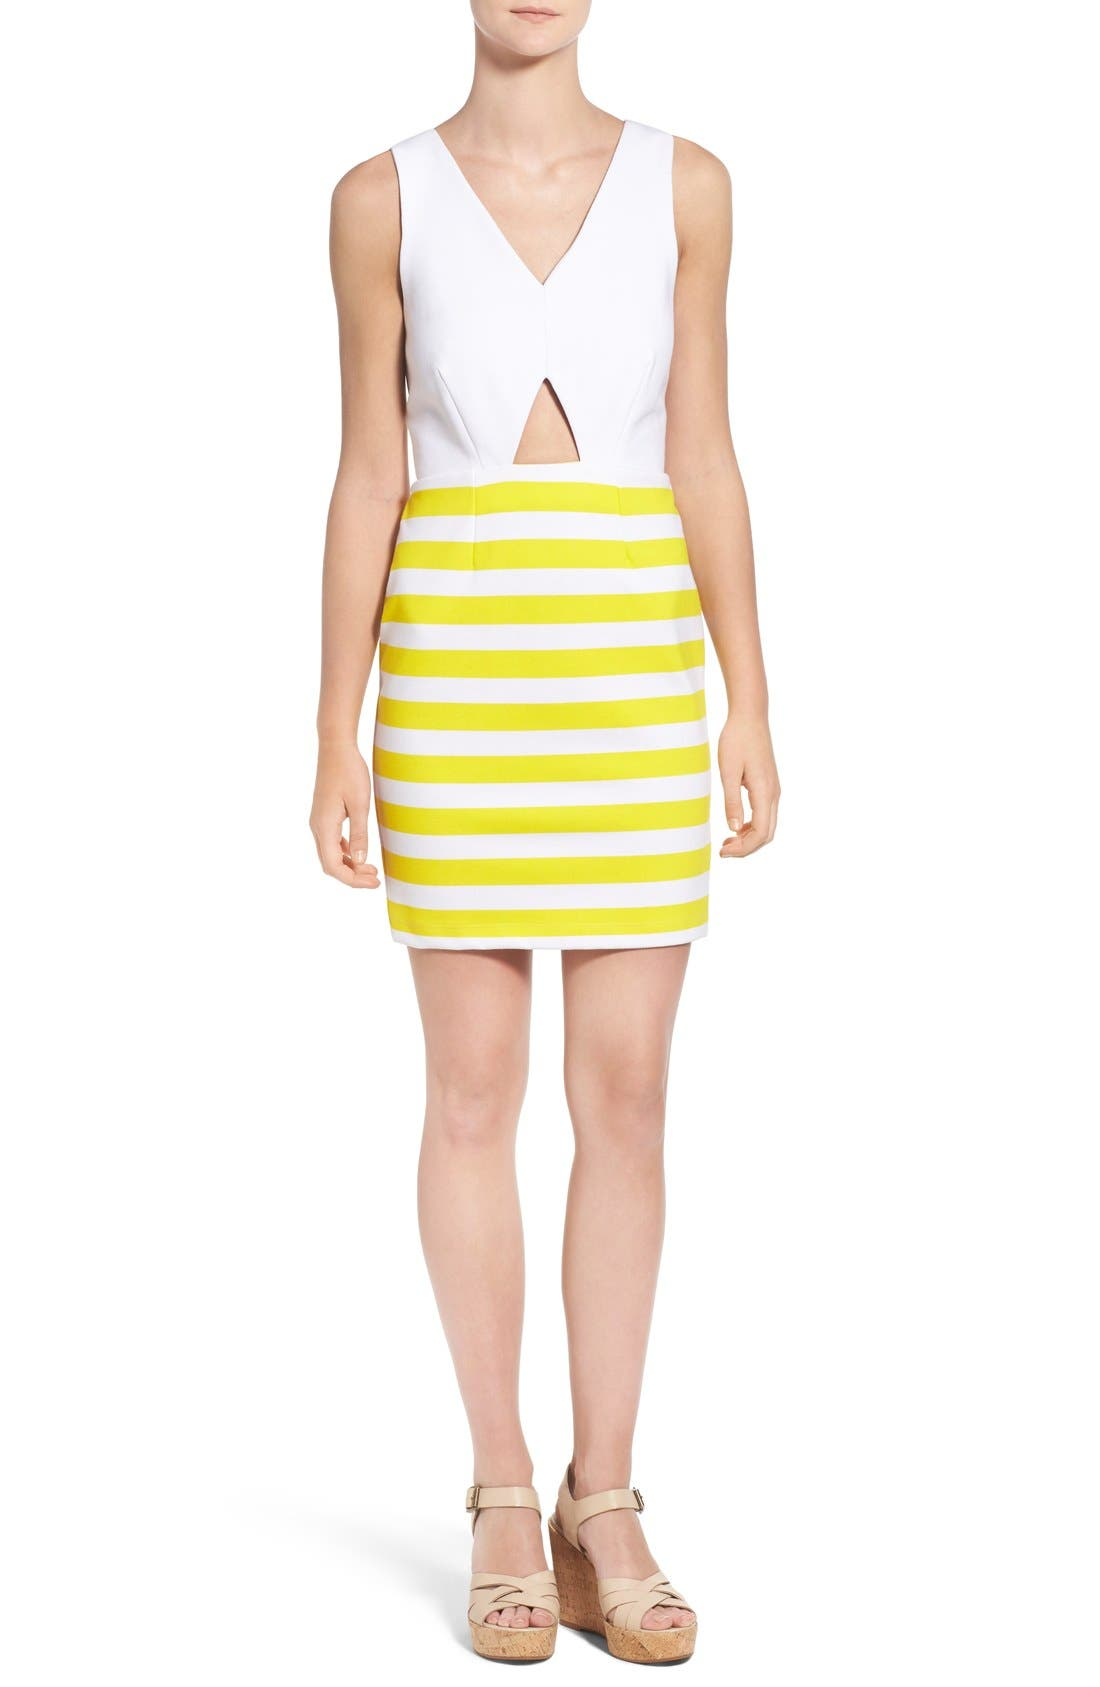 Alternate Image 1 Selected - Amour Vert 'Amber' Stripe Cutout Body-Con Dress